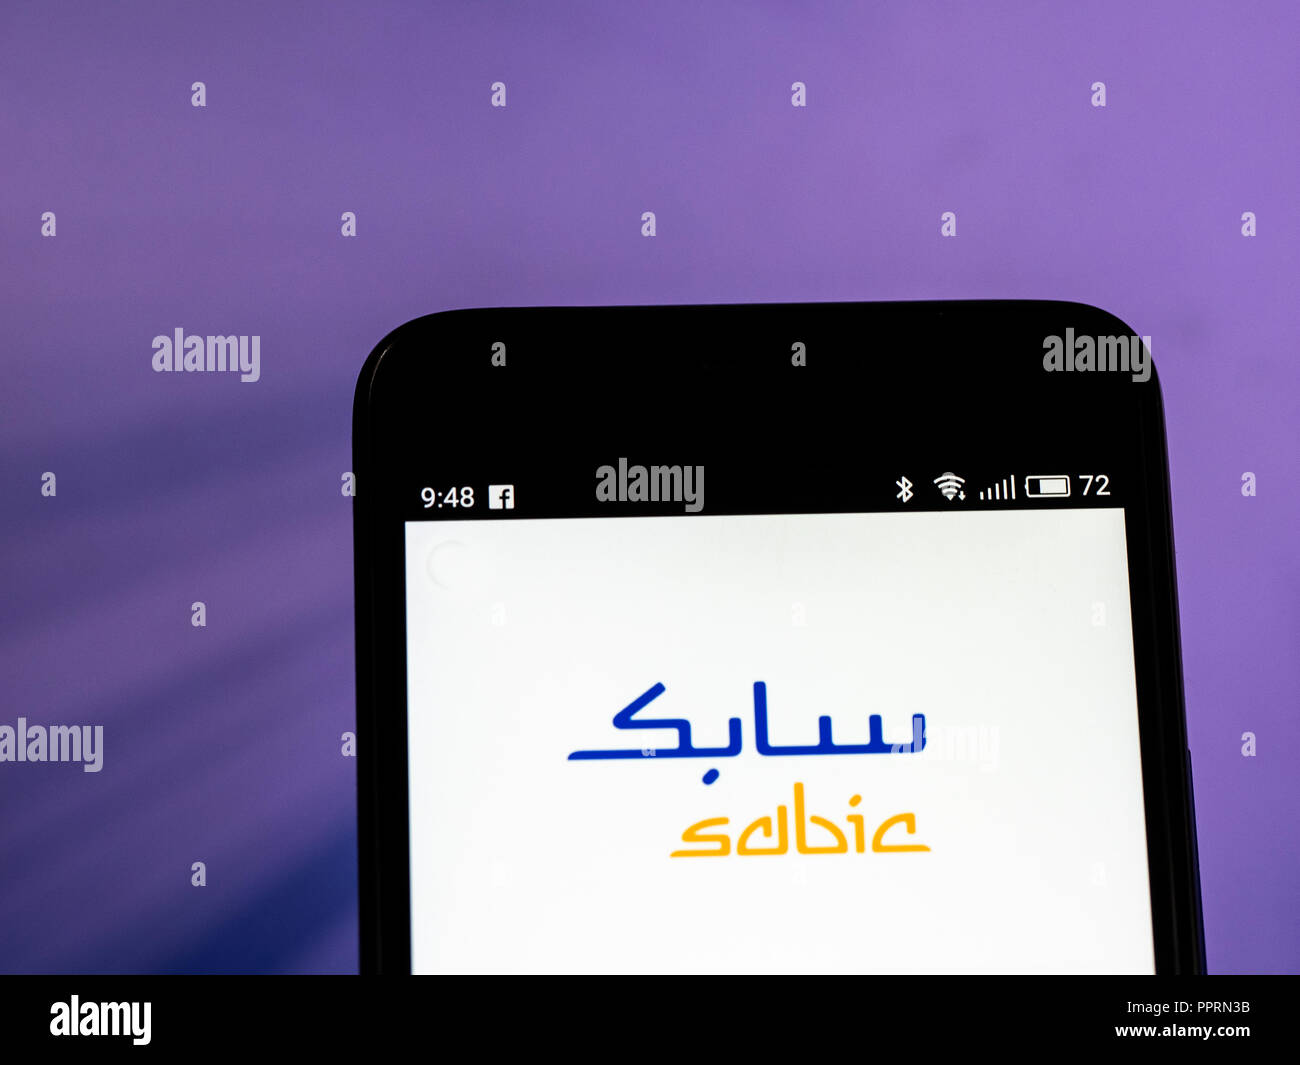 SABIC logo seen displayed on smart phone  SABIC is a Saudi